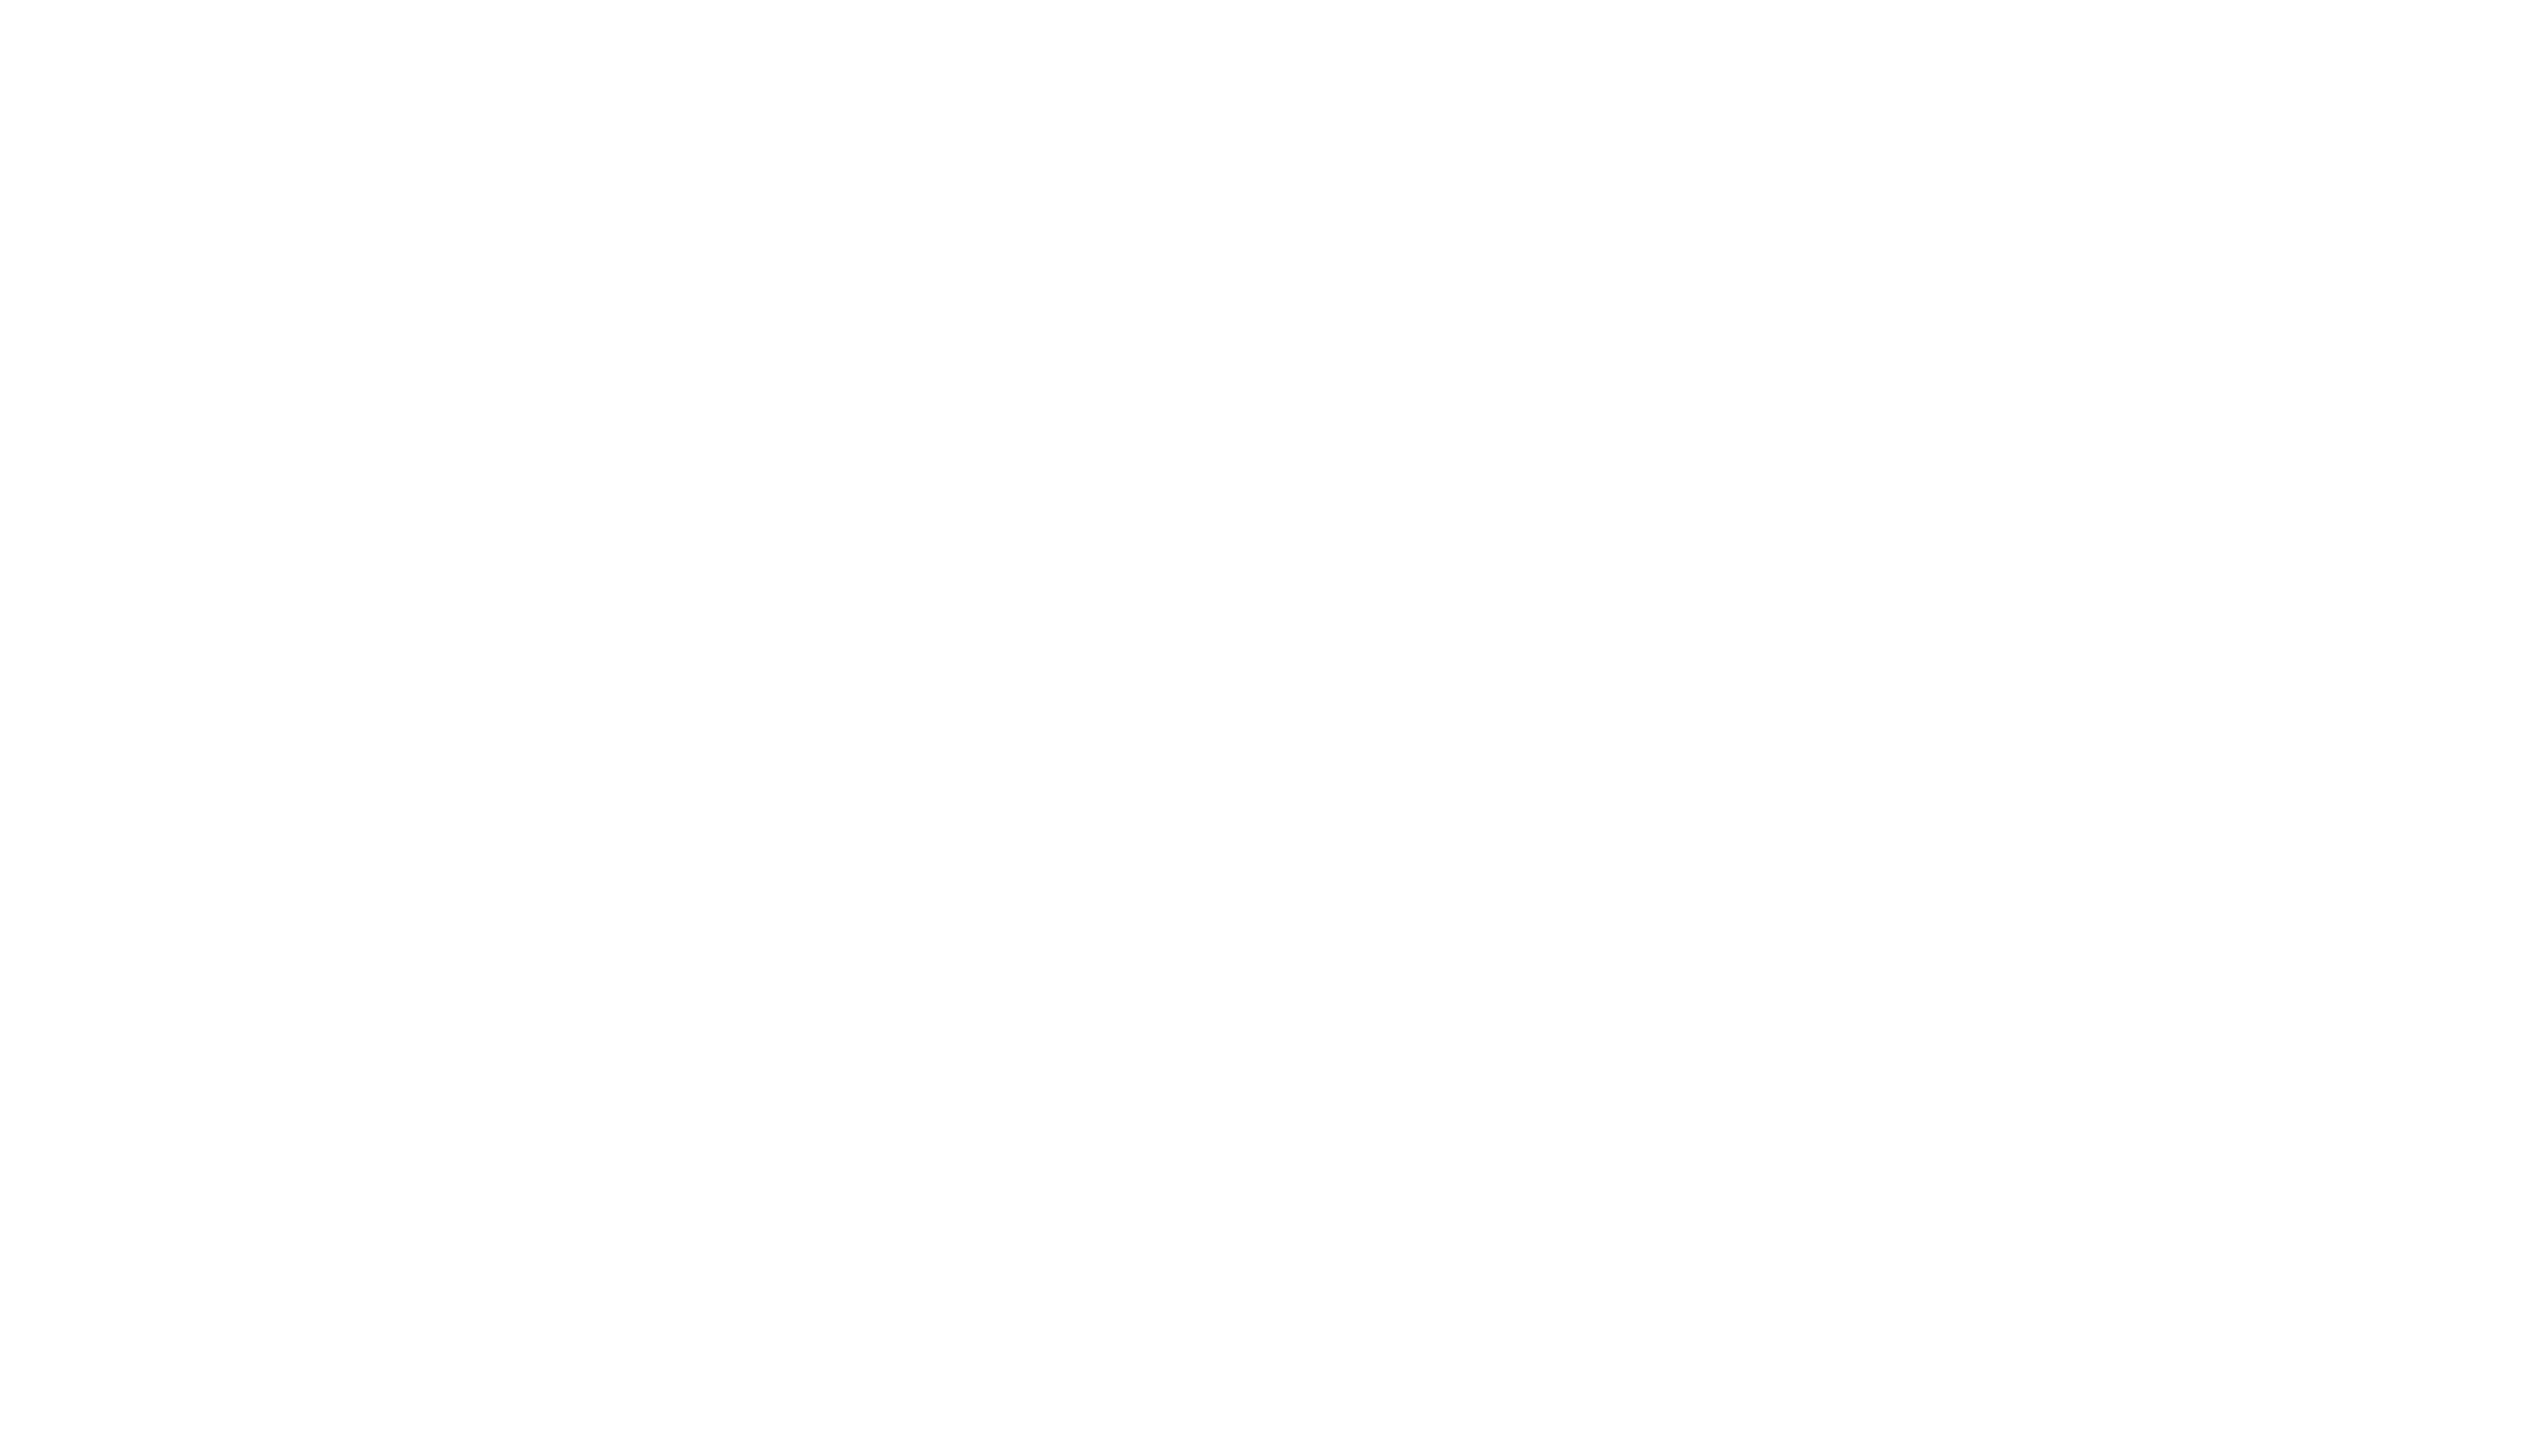 Personal Injury Lawyers near you